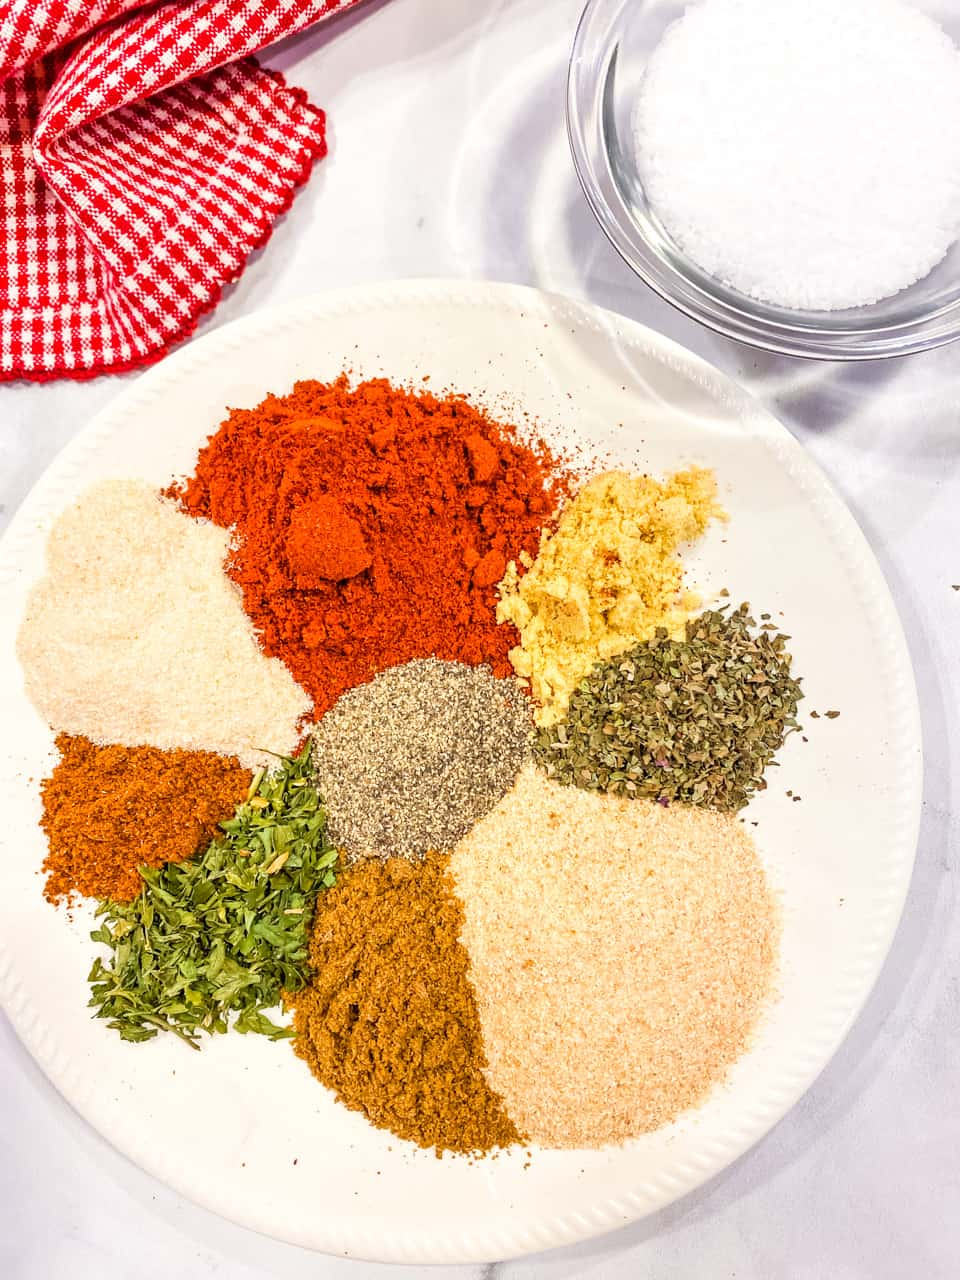 All the spices needed for the spice blend on a white dish